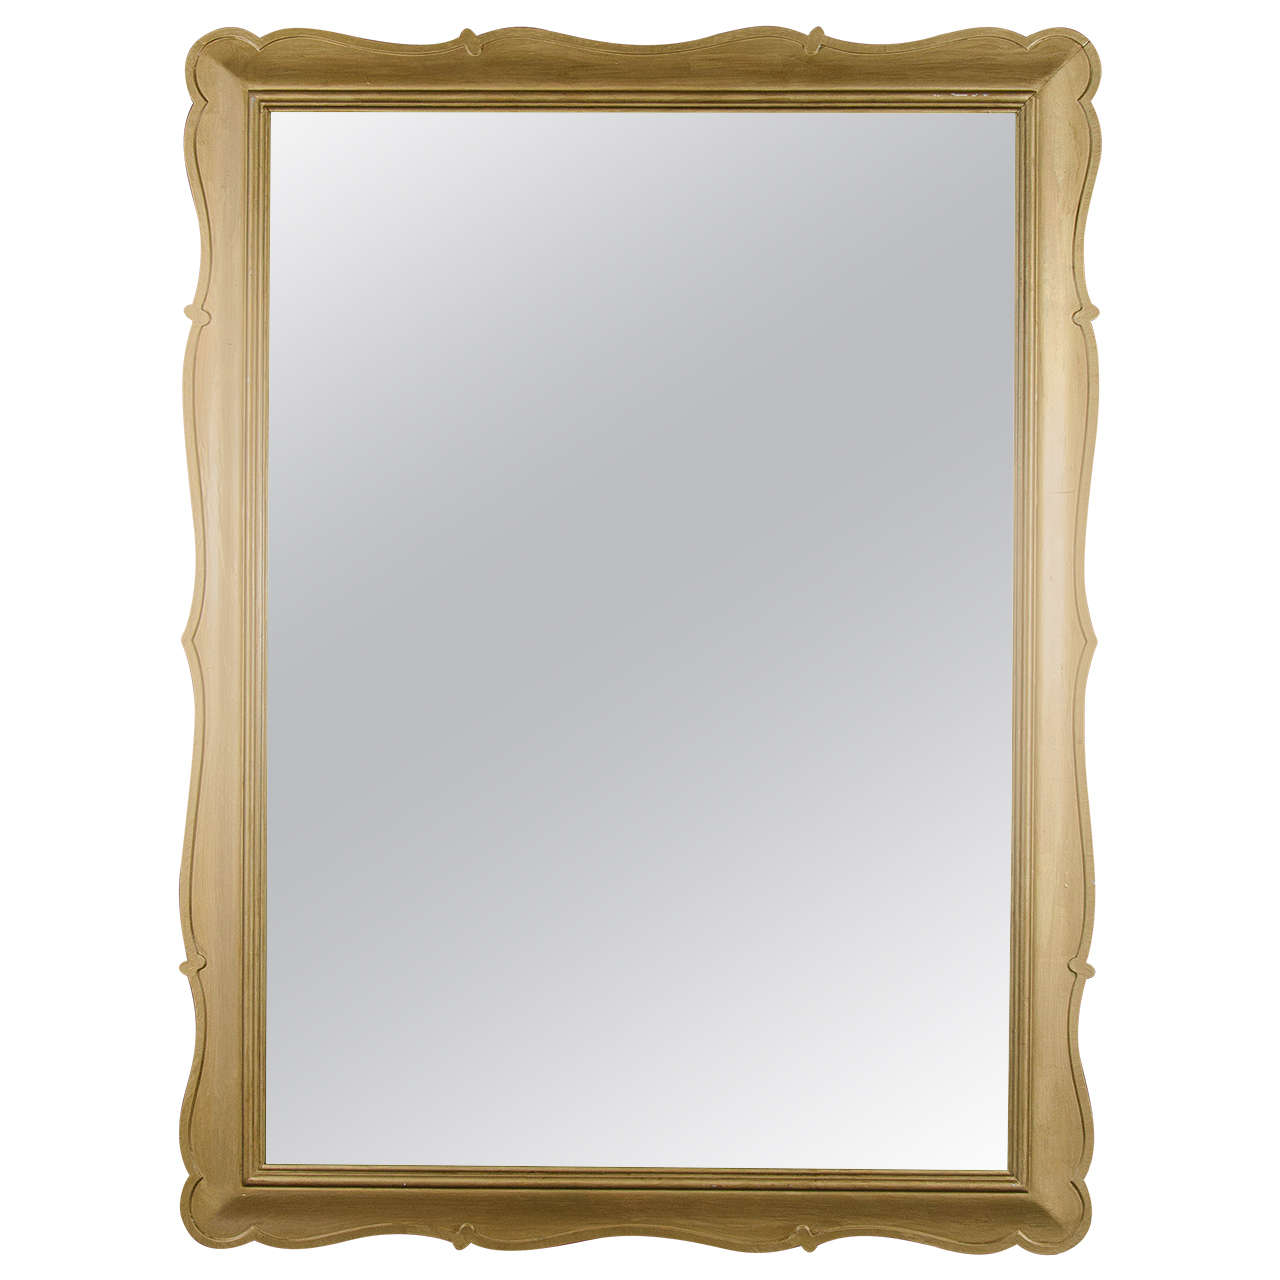 Elegant Scalloped Frame Mirror With Gold Leaf Finish